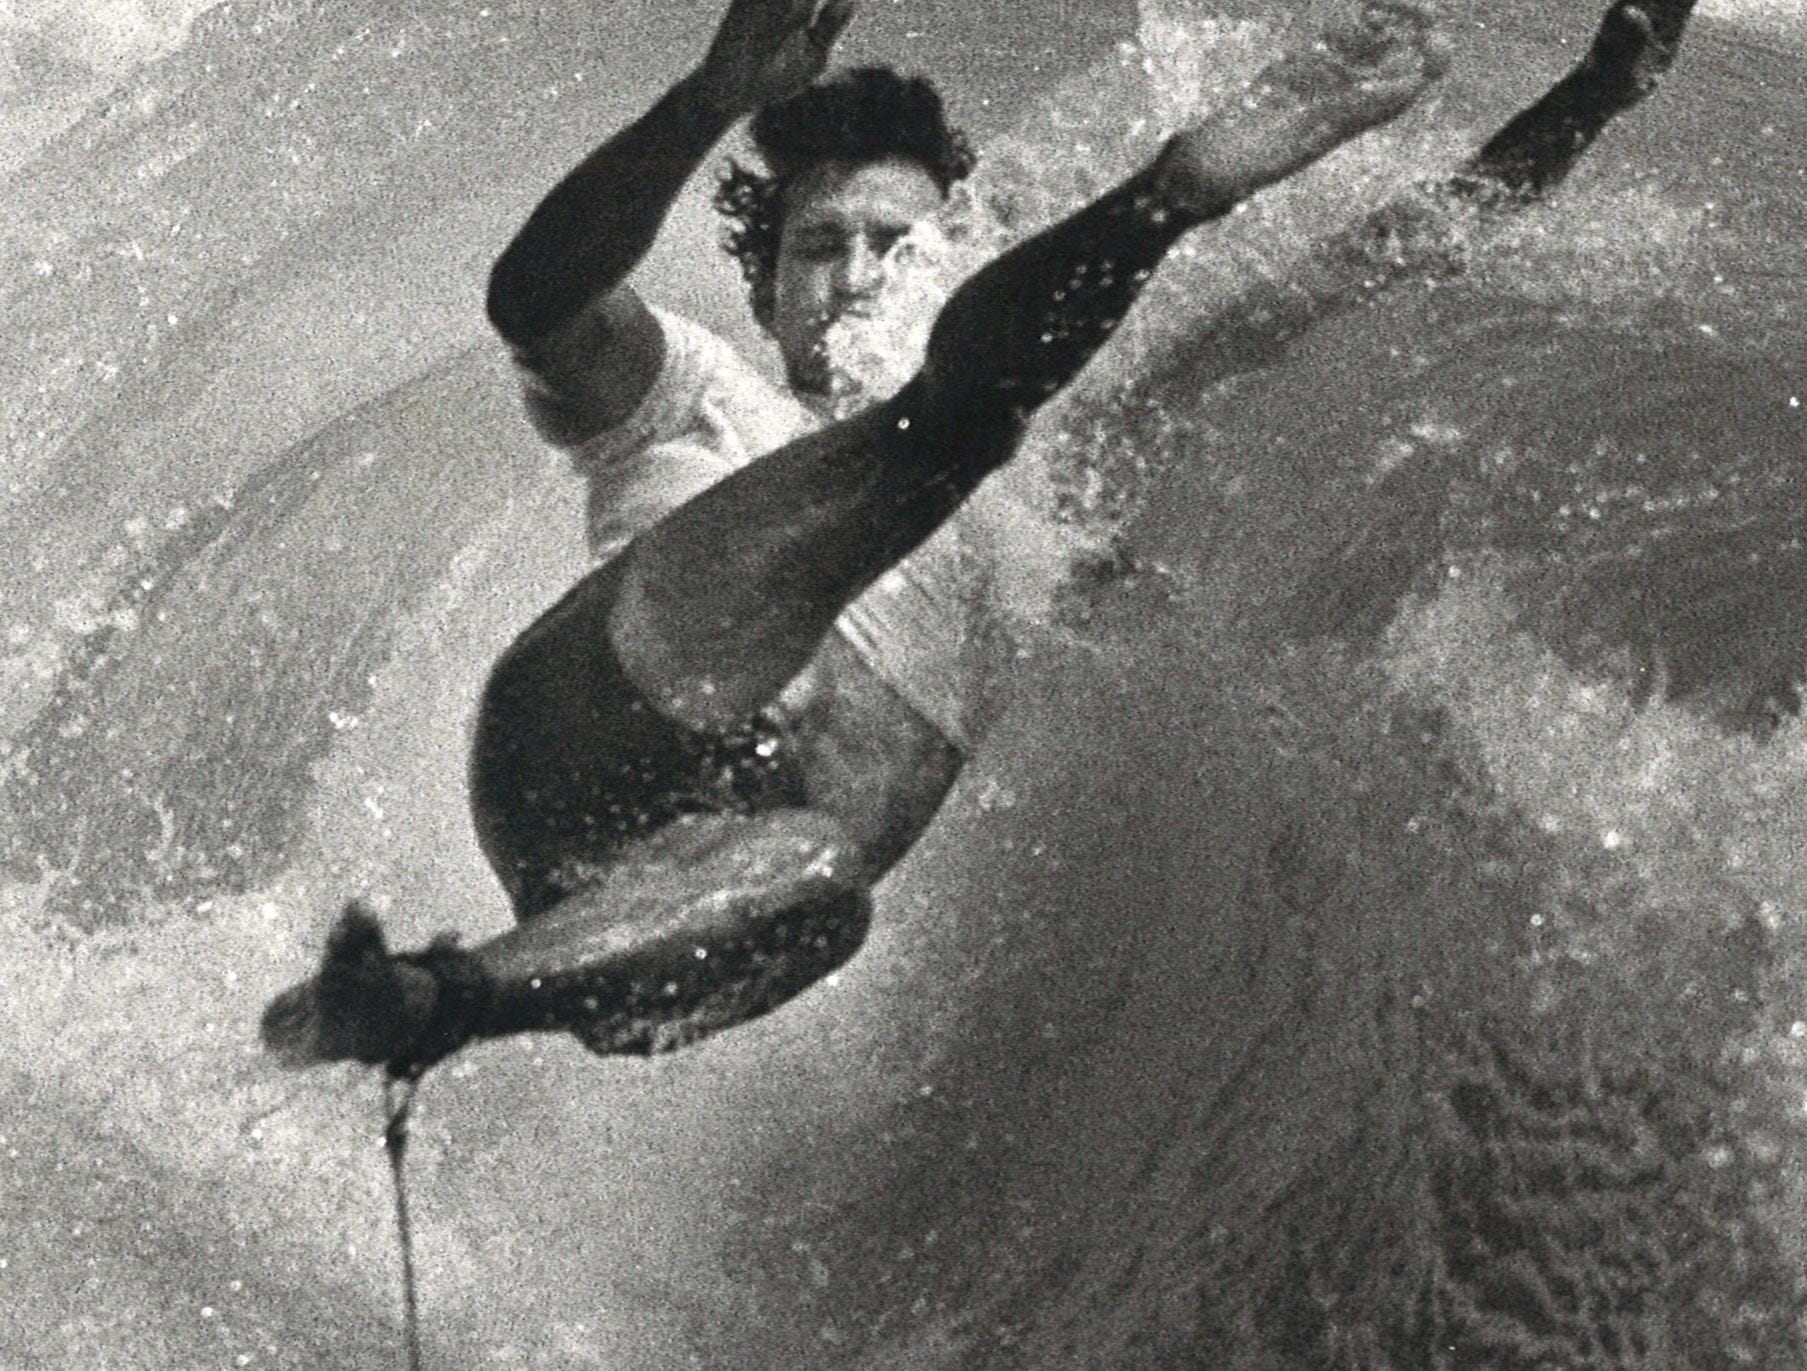 A surfer wipes out in August 1983 in Corpus Christi.